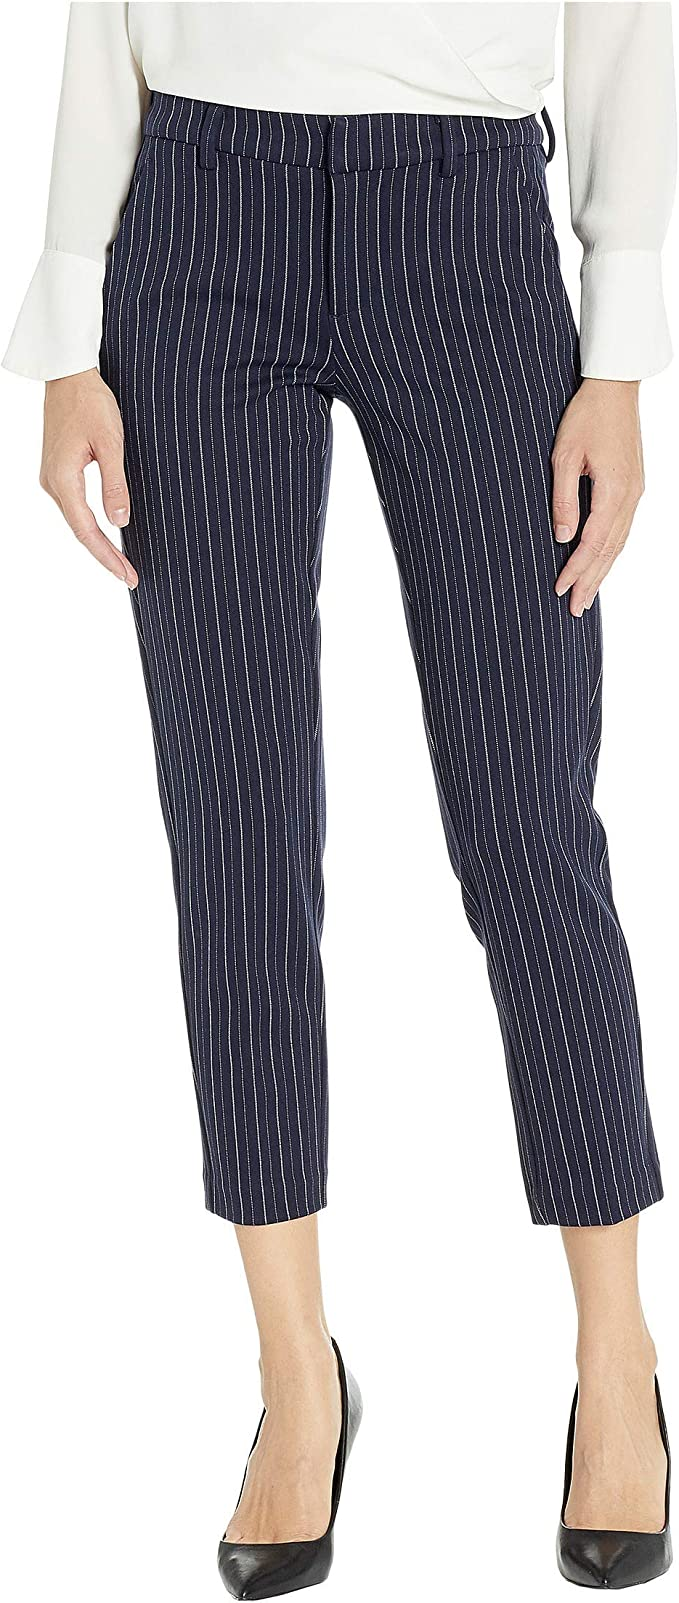 Liverpool Women S Kelsey Trousers In Novelty Stripe Knit At Amazon Women S Clothing Store